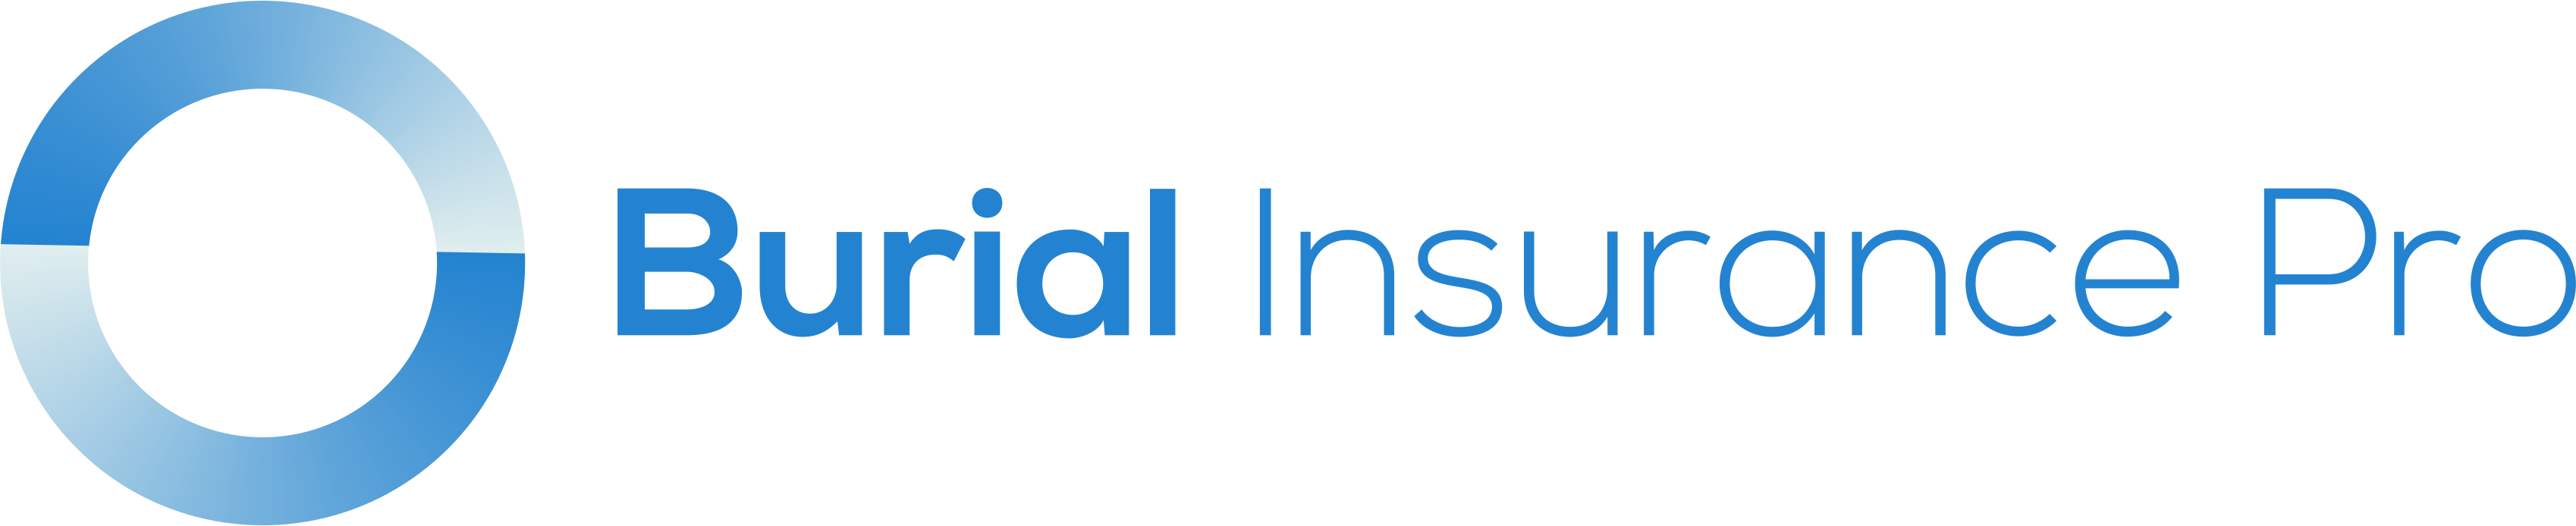 Burial Insurance Pro 2018 & Funeral Insurance Plans [No Waiting Periods]